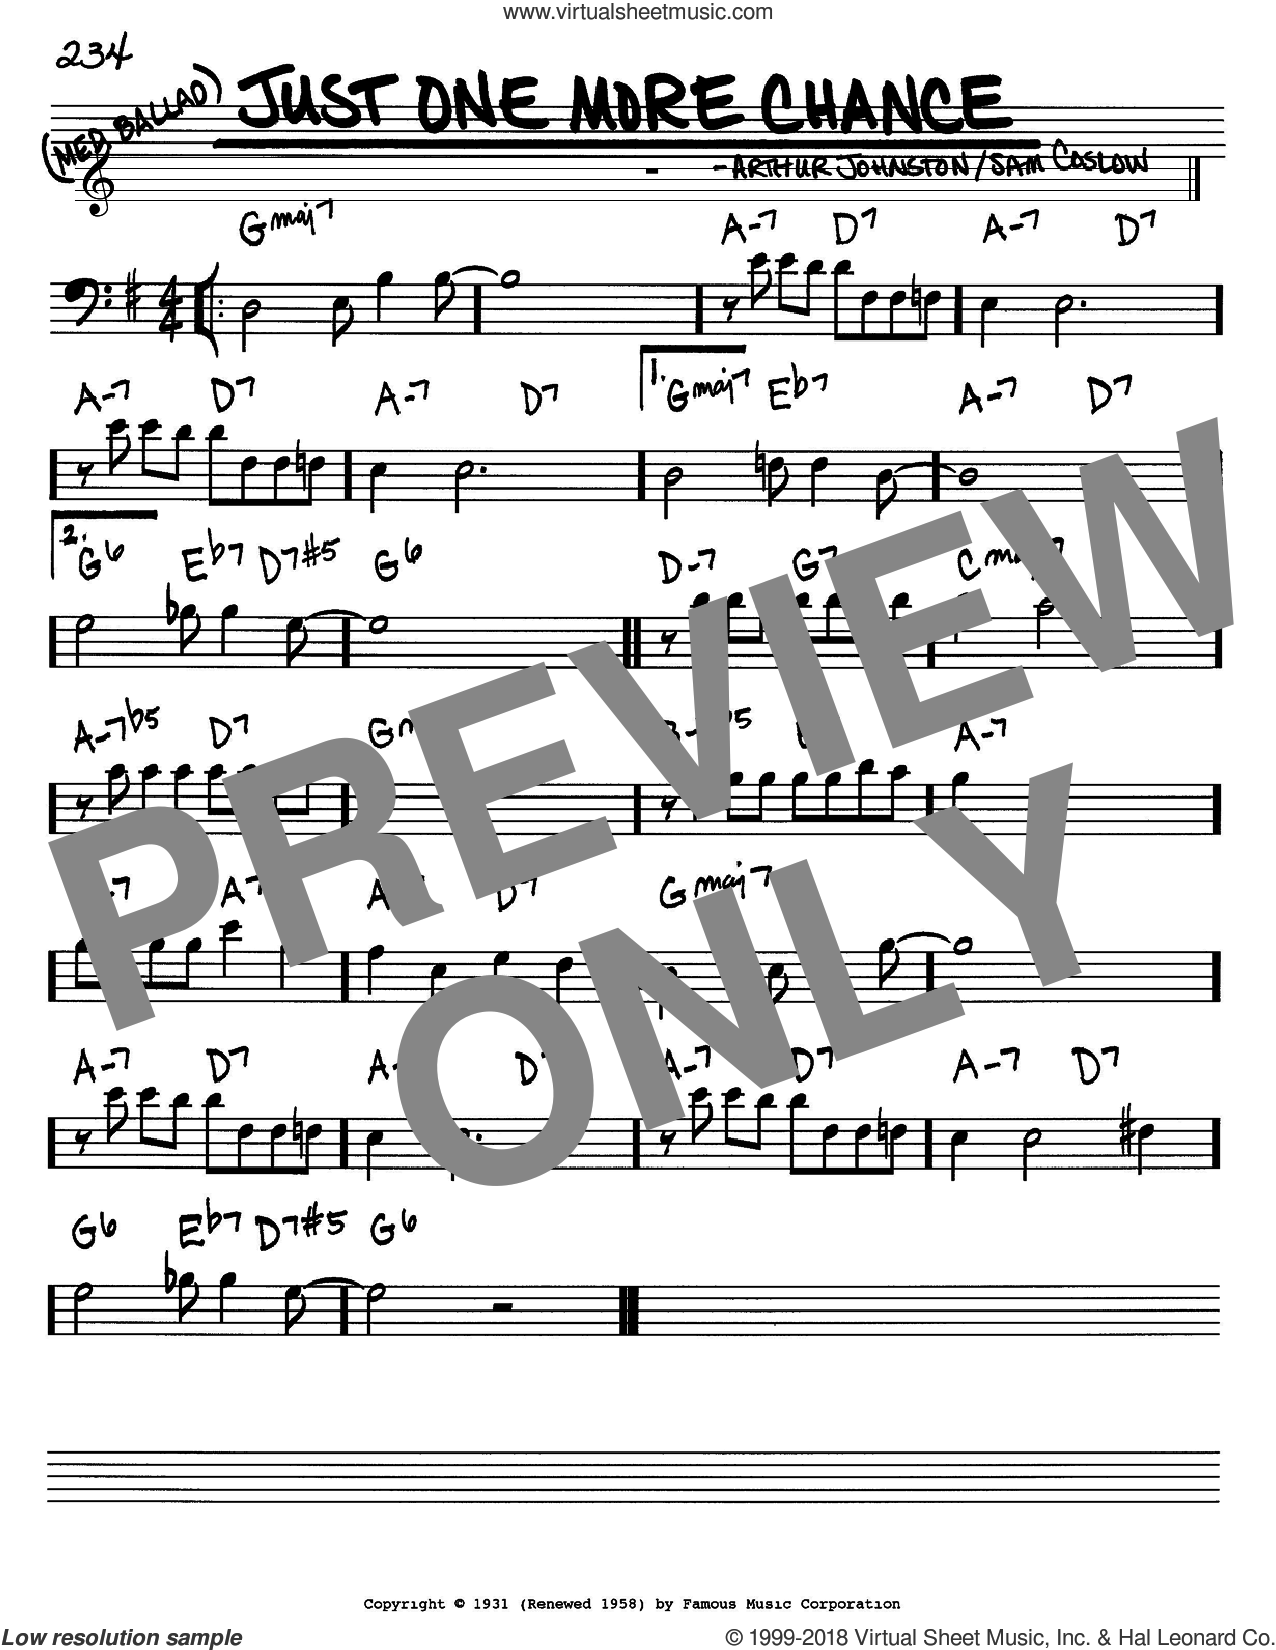 Just One More Chance sheet music for voice and other instruments (Bass Clef ) by Sam Coslow, Bing Crosby and Arthur Johnston. Score Image Preview.